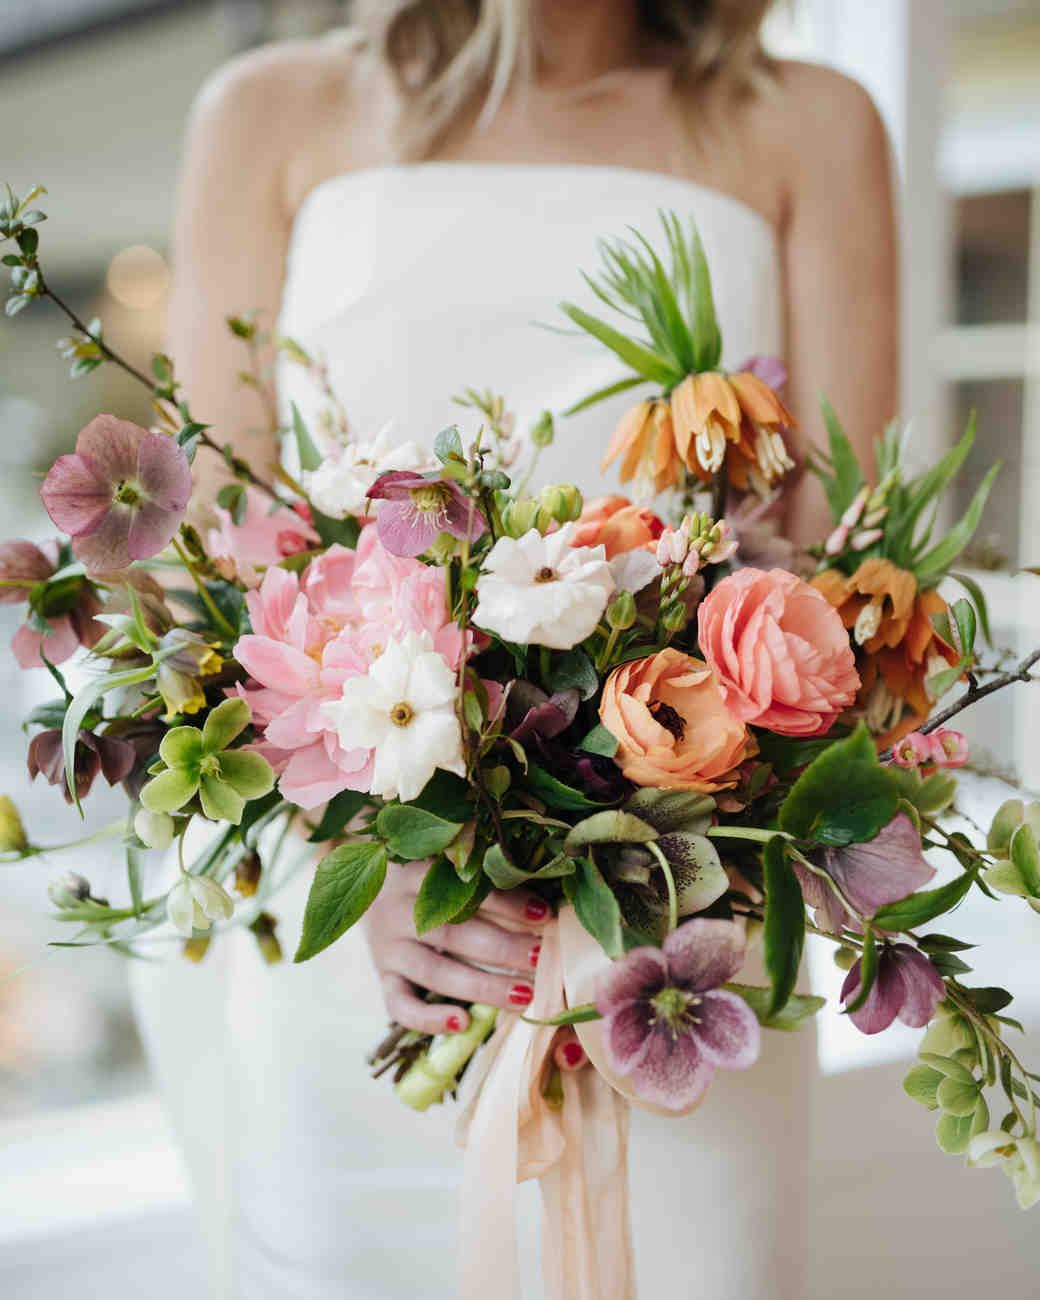 52 Ideas For Your Spring Wedding Bouquet Spring Wedding Bouquets Bridal Bouquet Spring Summer Wedding Bouquets